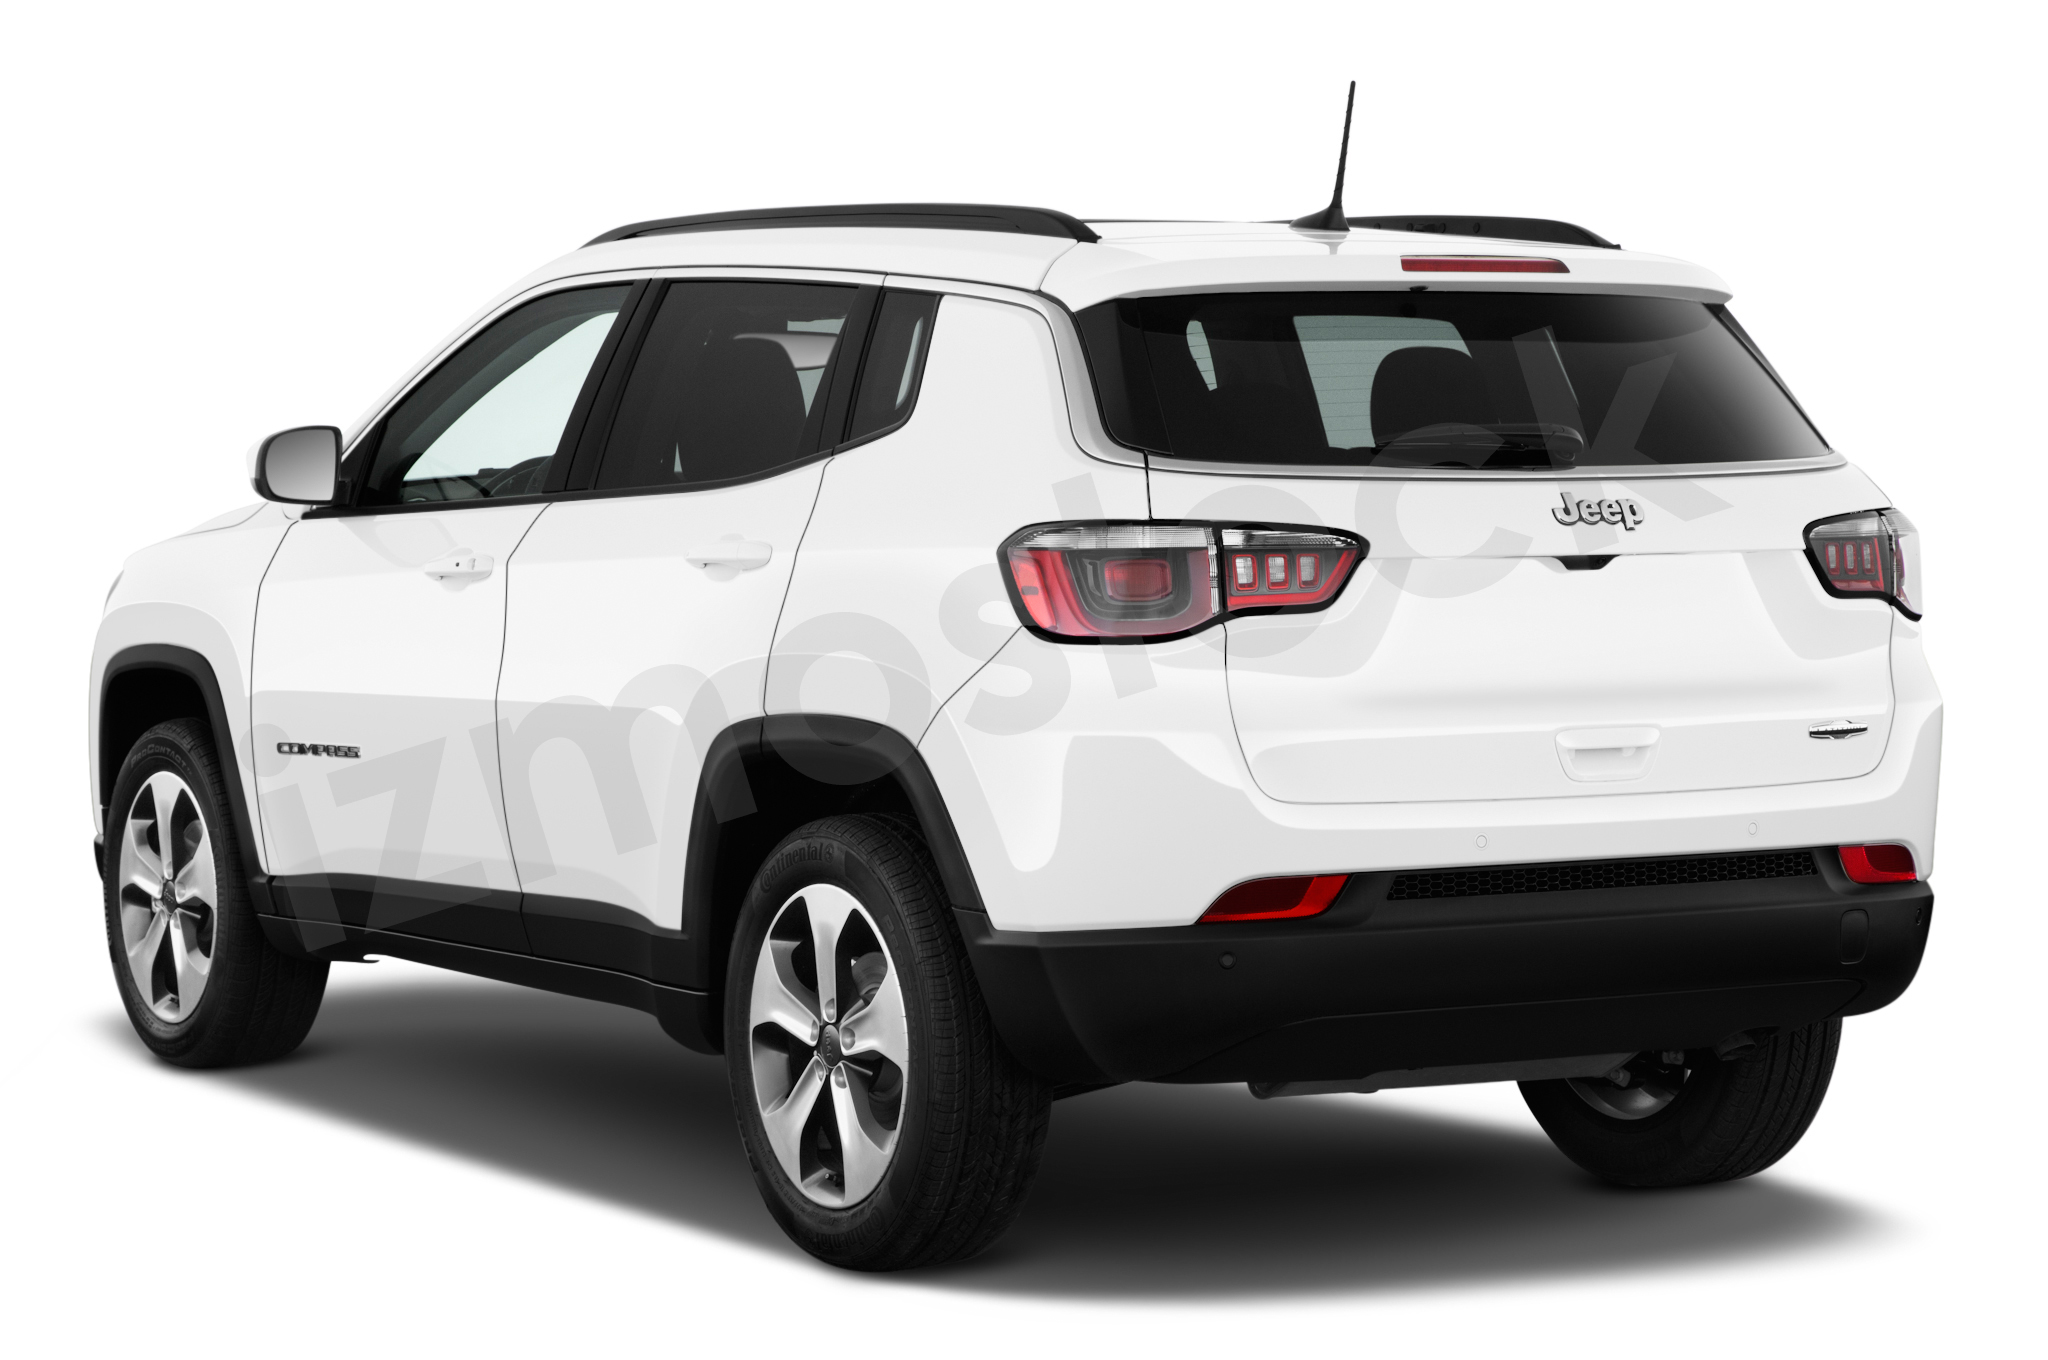 jeep_17compass2a_angularrear